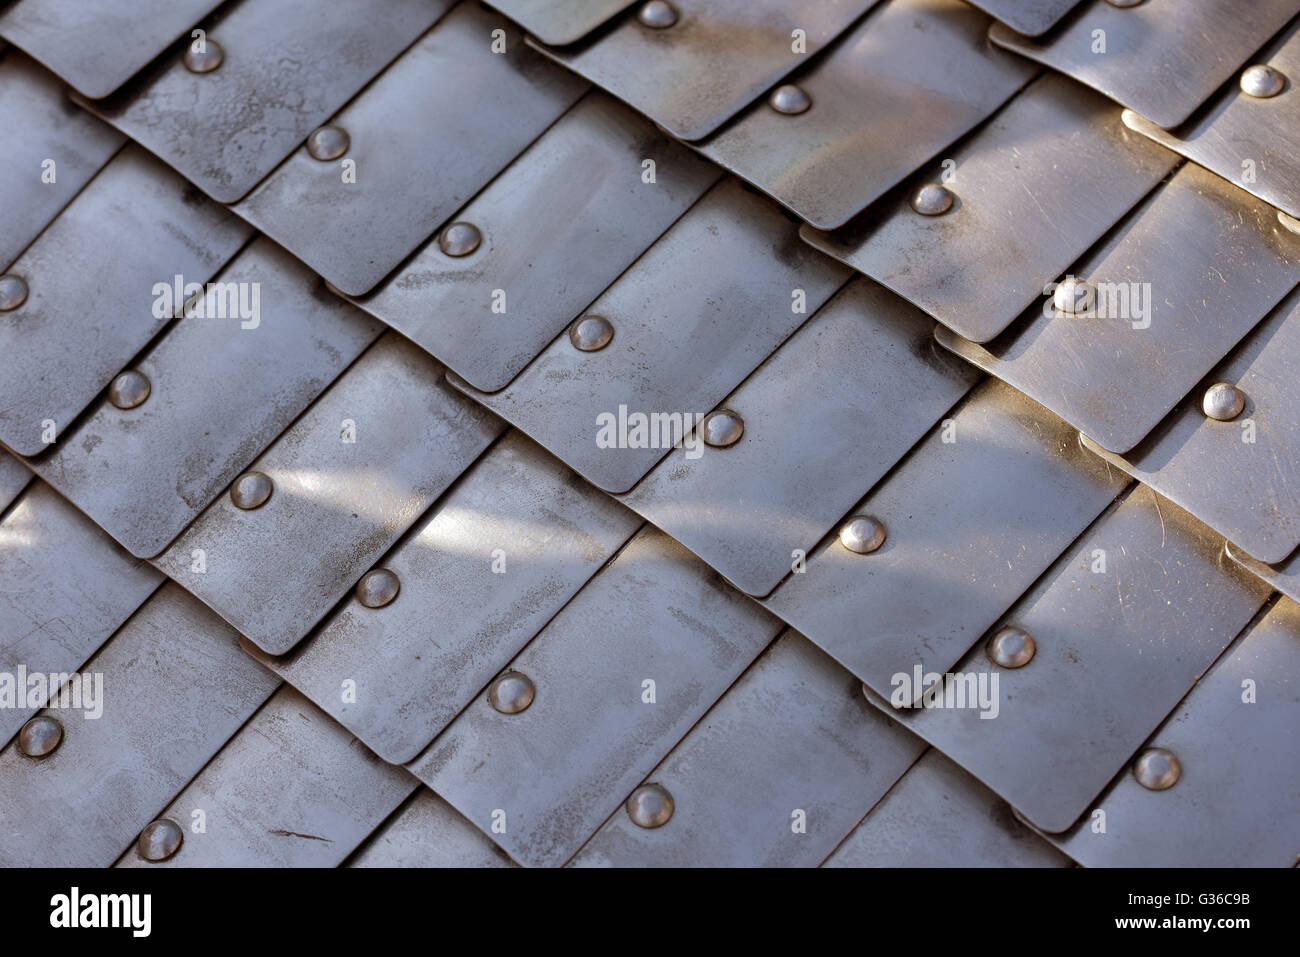 Fighting Protection of ancient warrior - chainmail of metallic plates - Stock Image